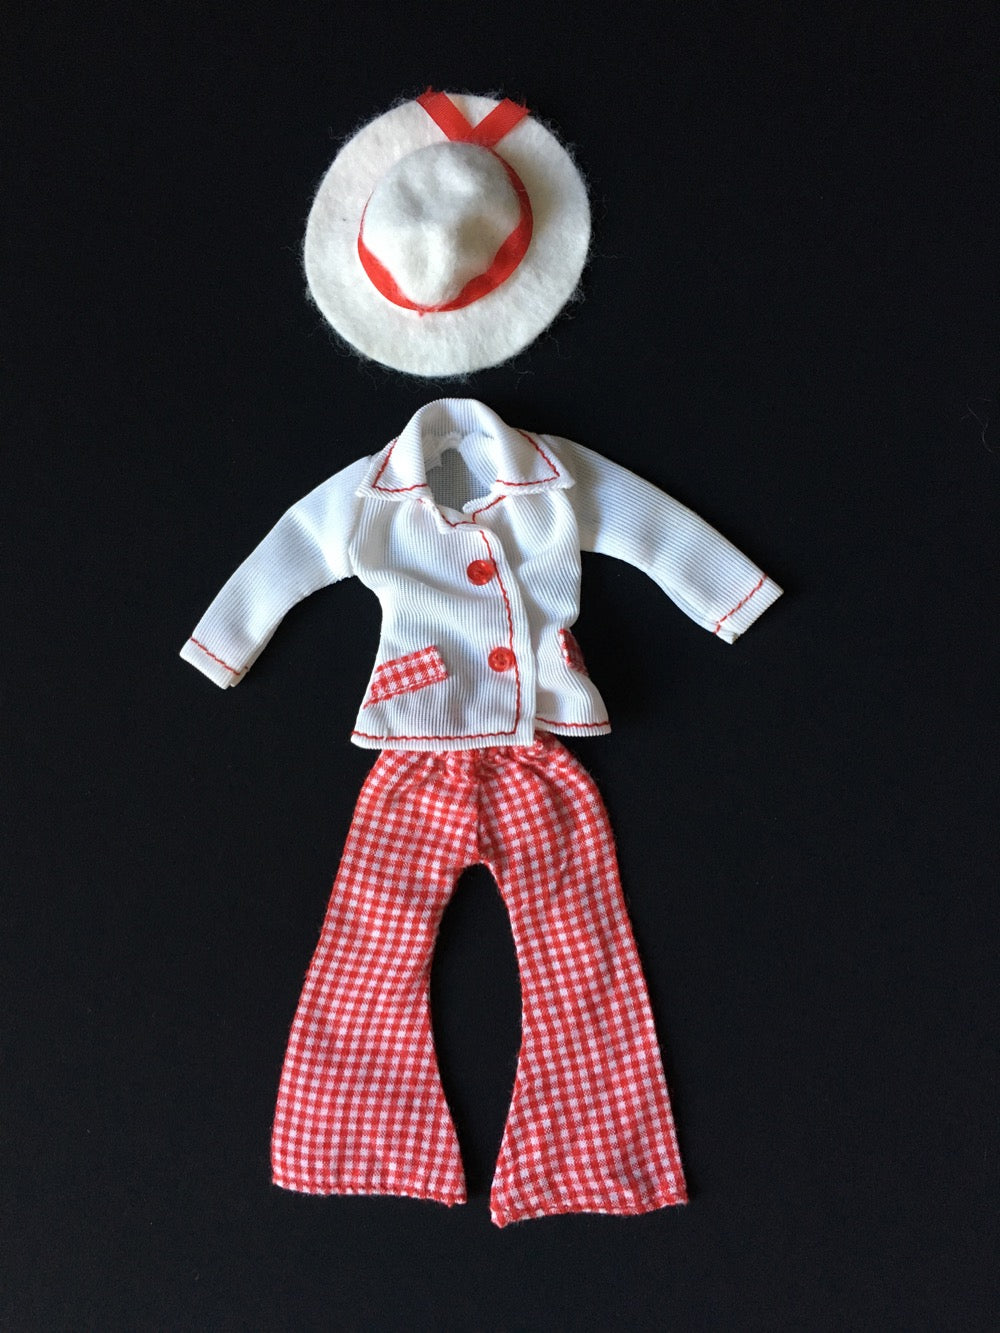 MEGO Dinah Mite Blazer Days 1411 white jacket red trousers set fit 8